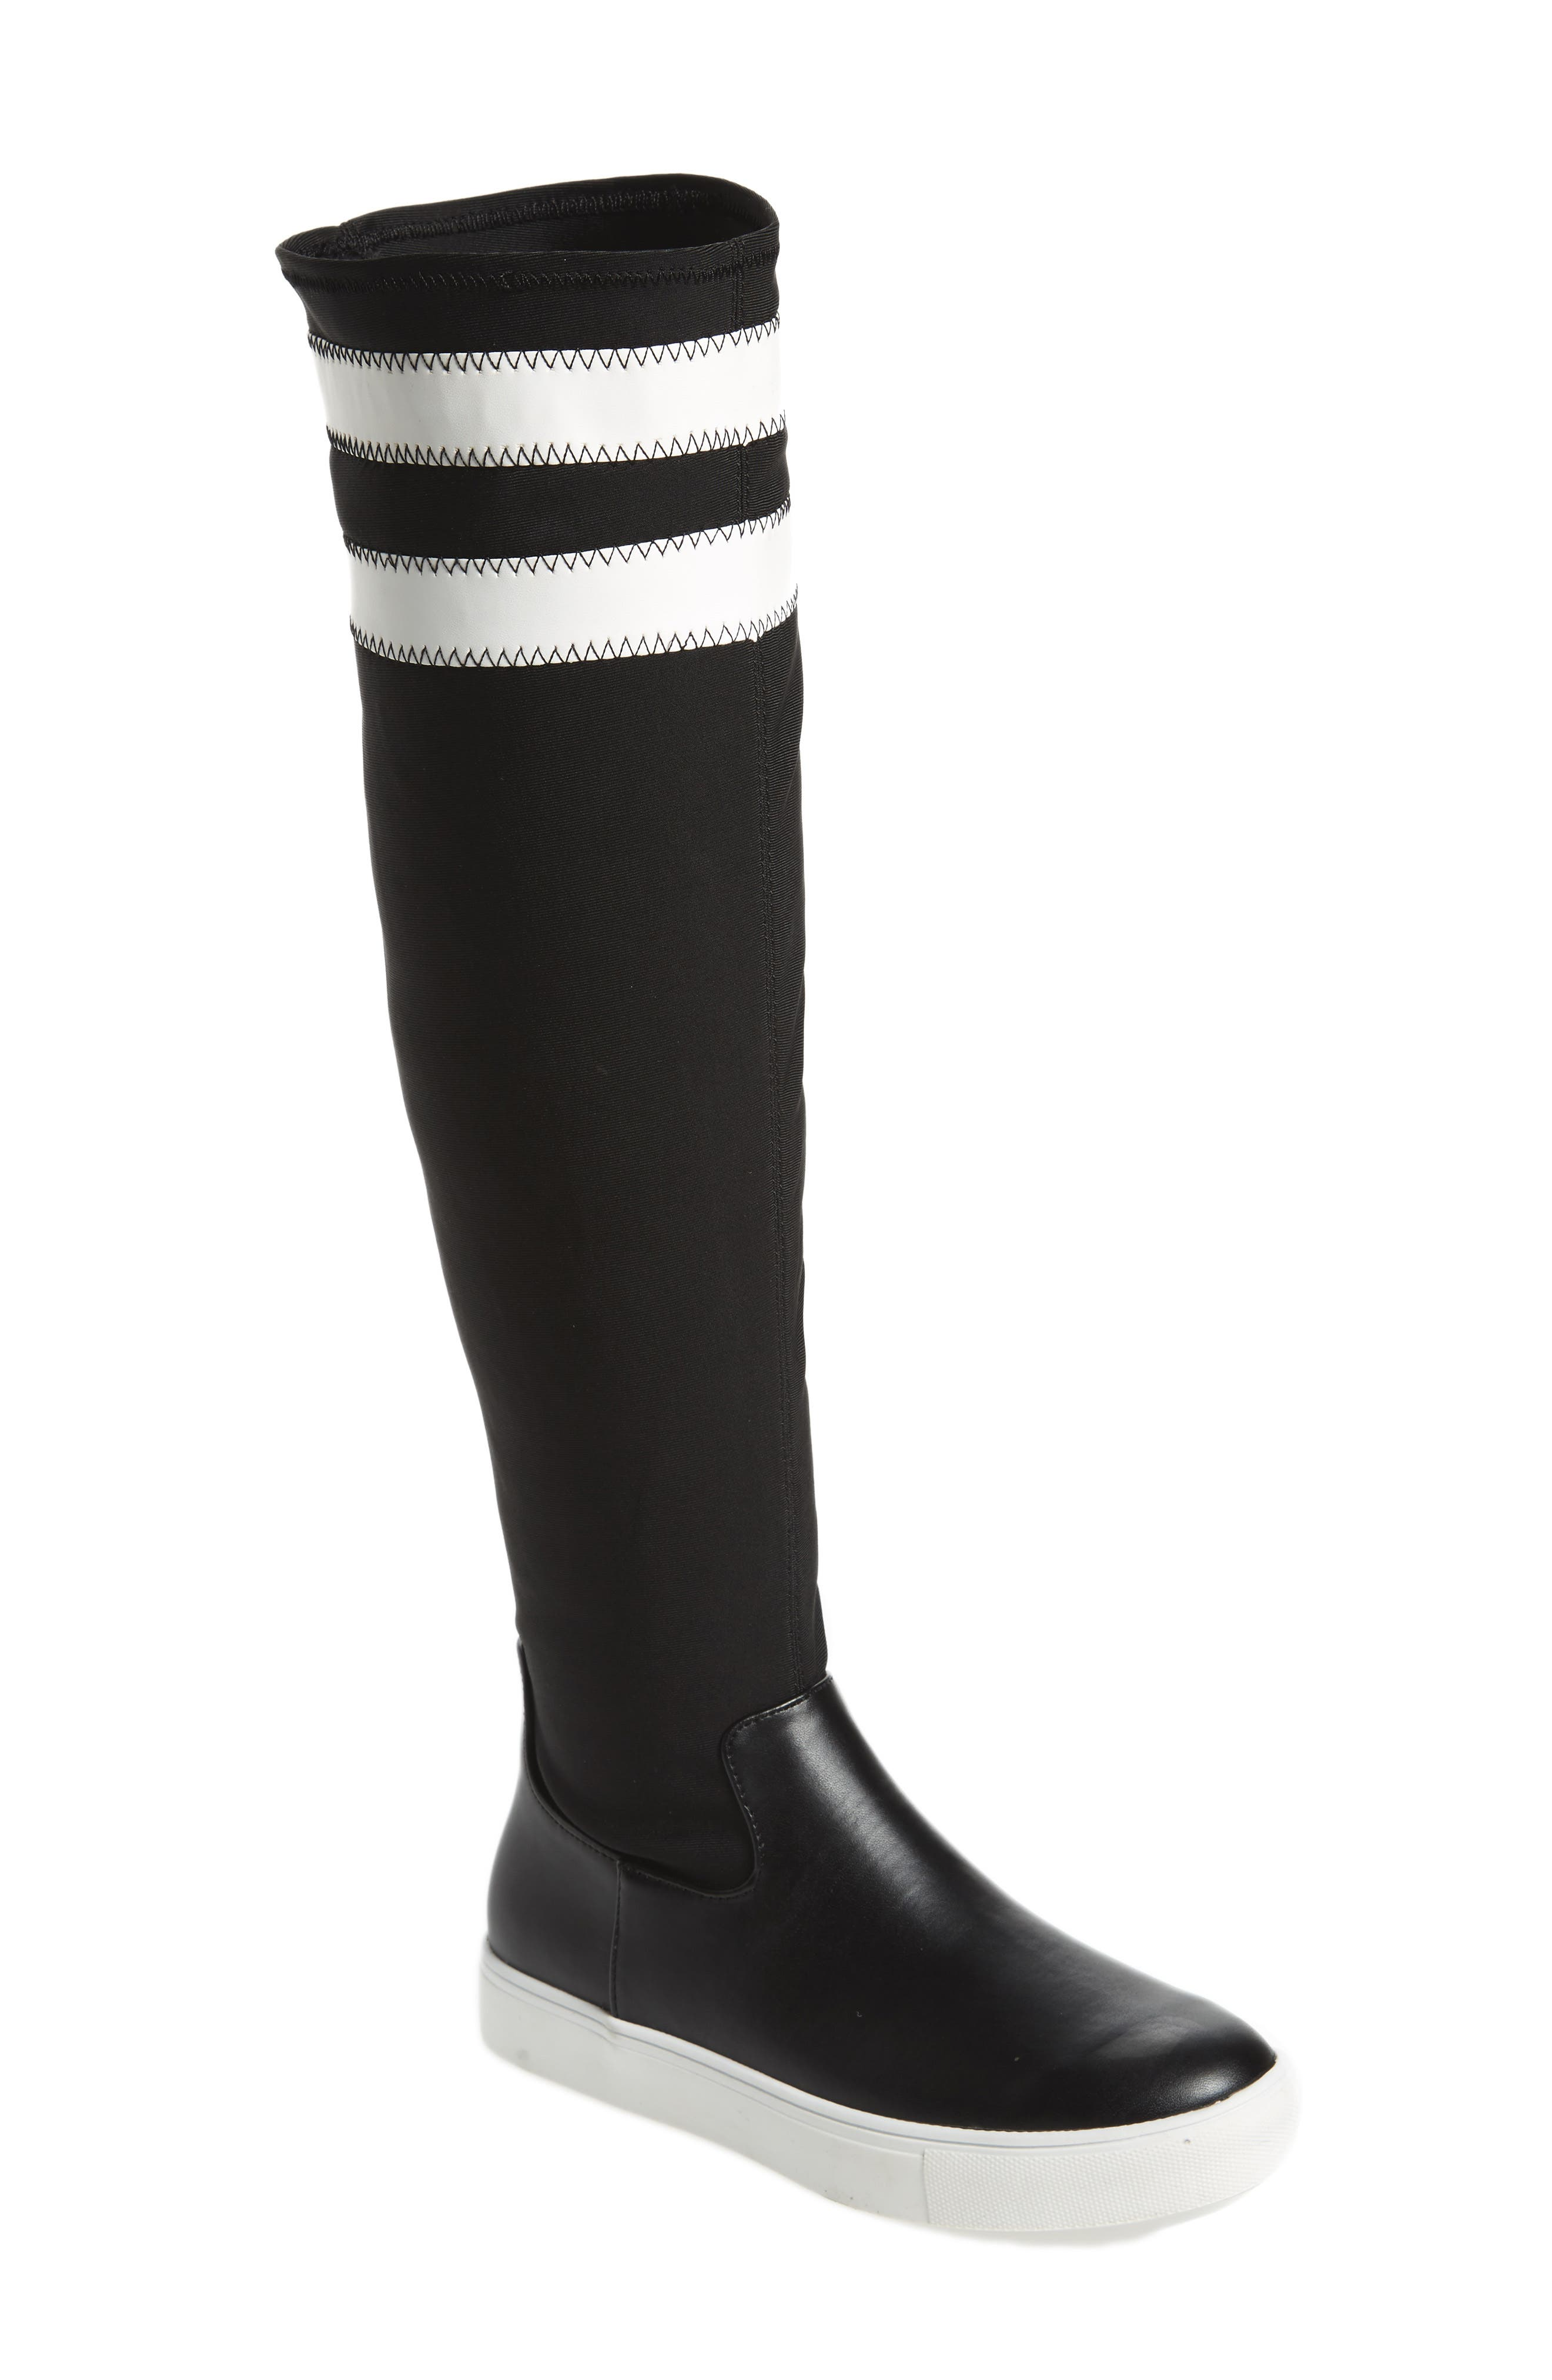 Alternate Image 1 Selected - MIA Melody Over the Knee Boot (Women)